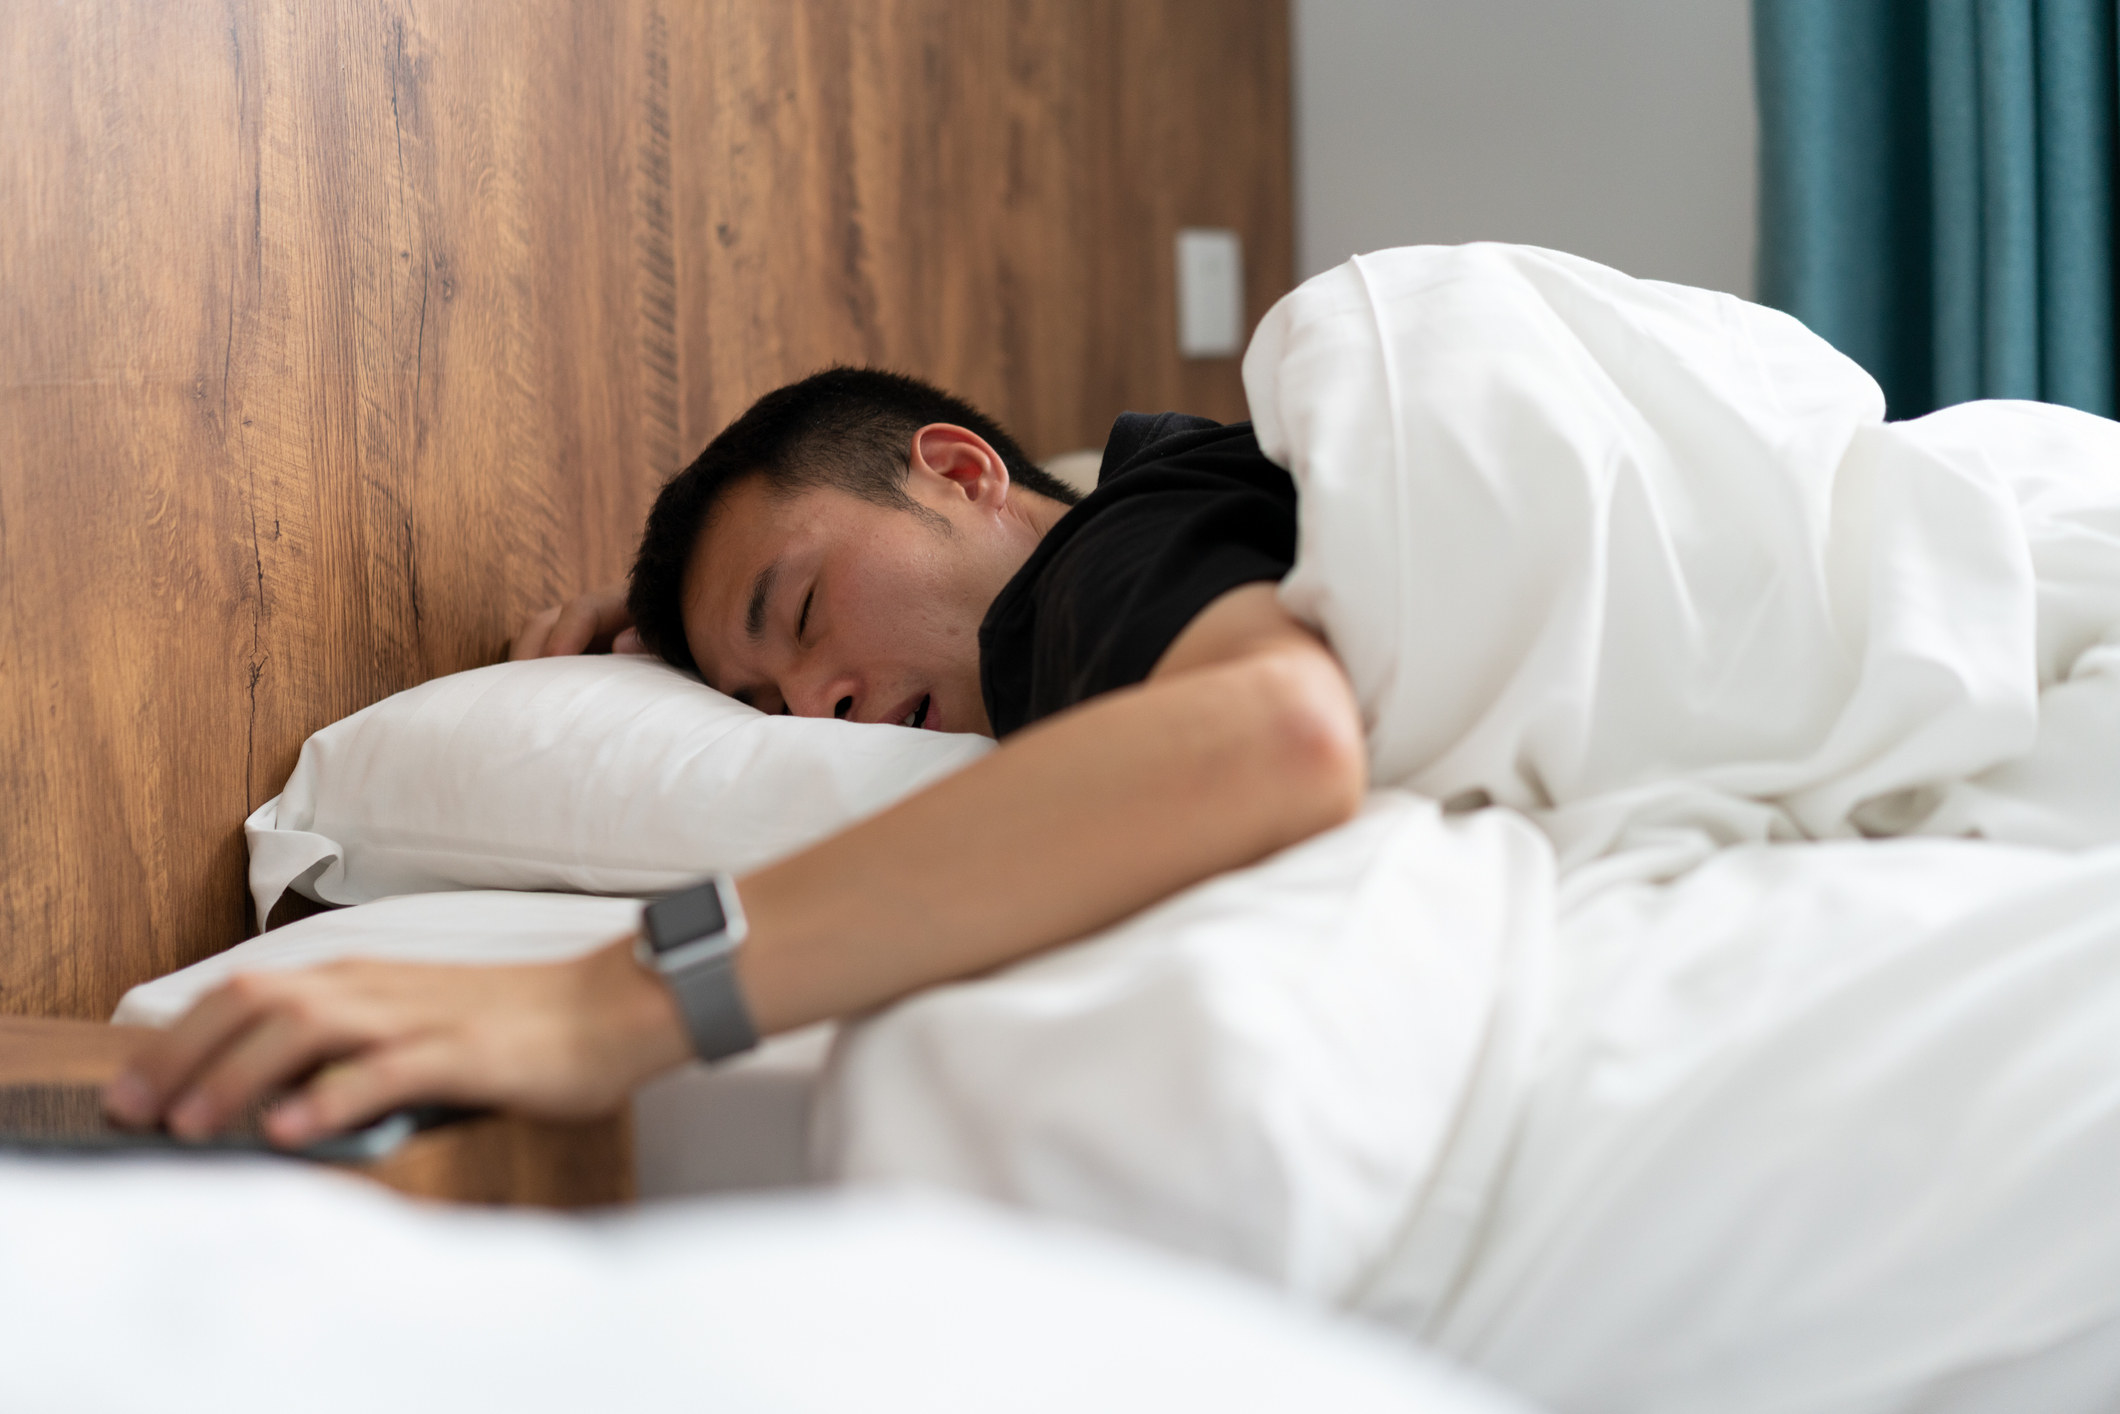 A guy asleep in bed